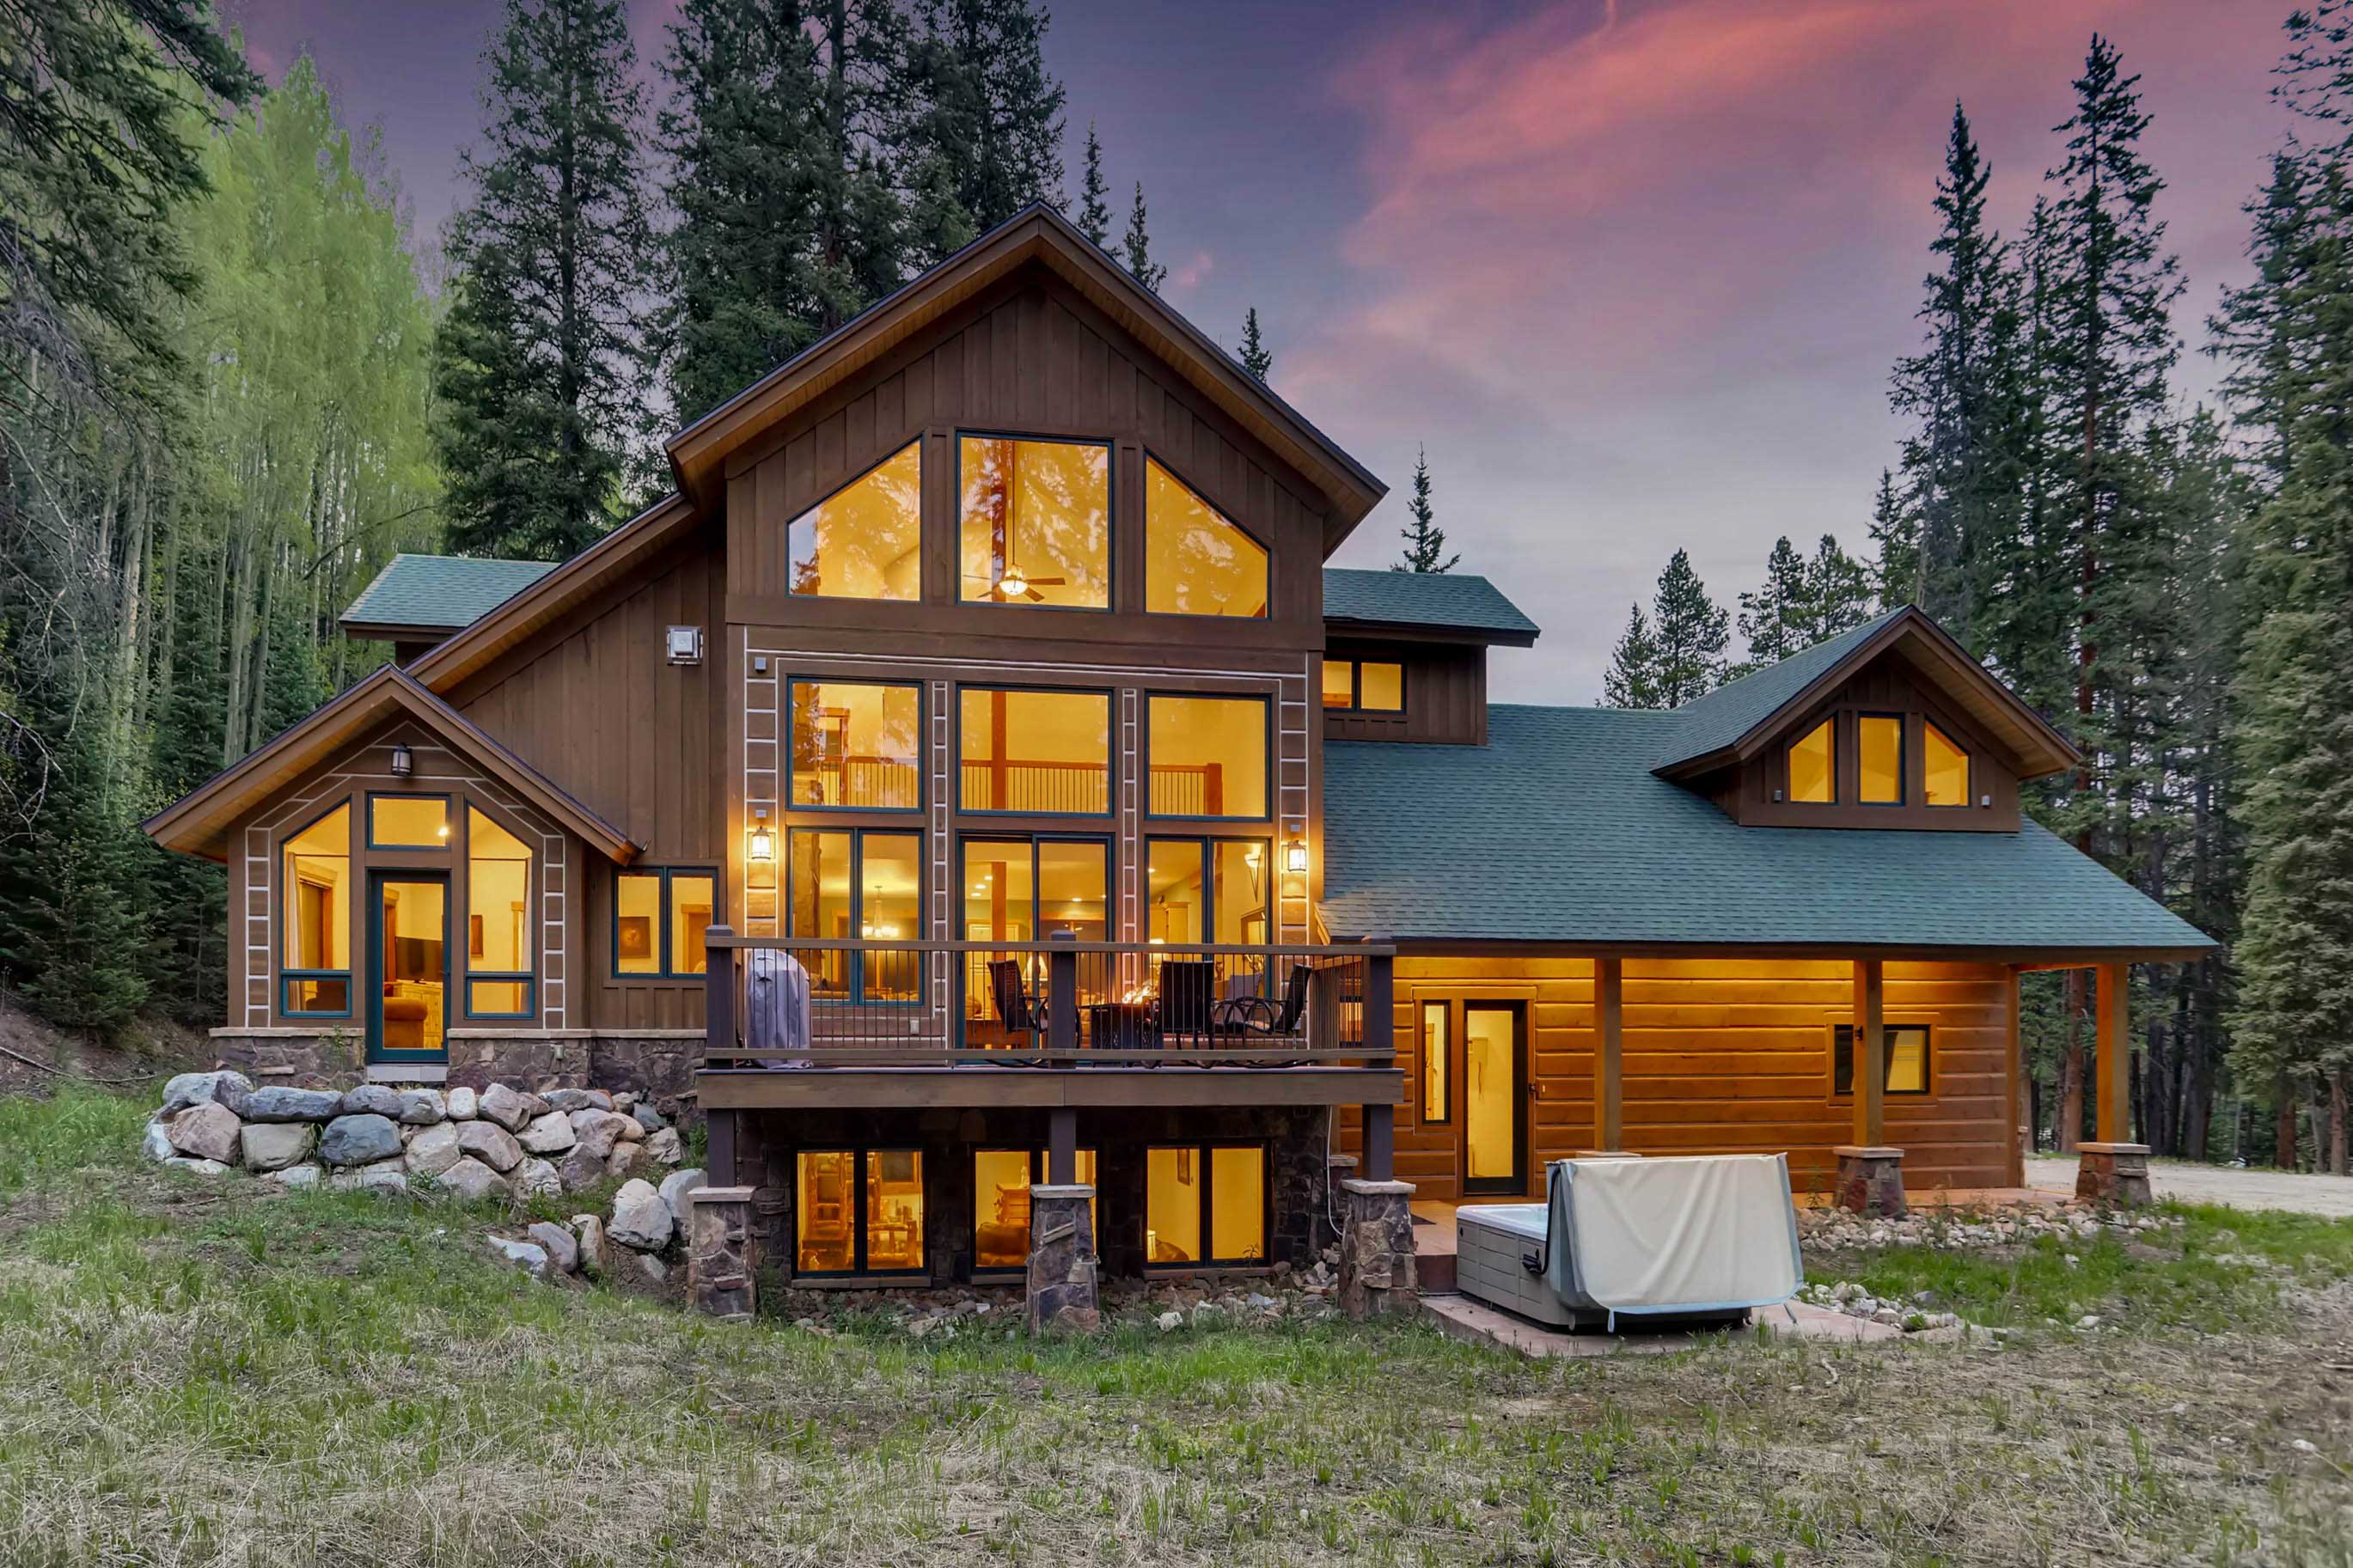 Step outside to take in the views of the National Forest!